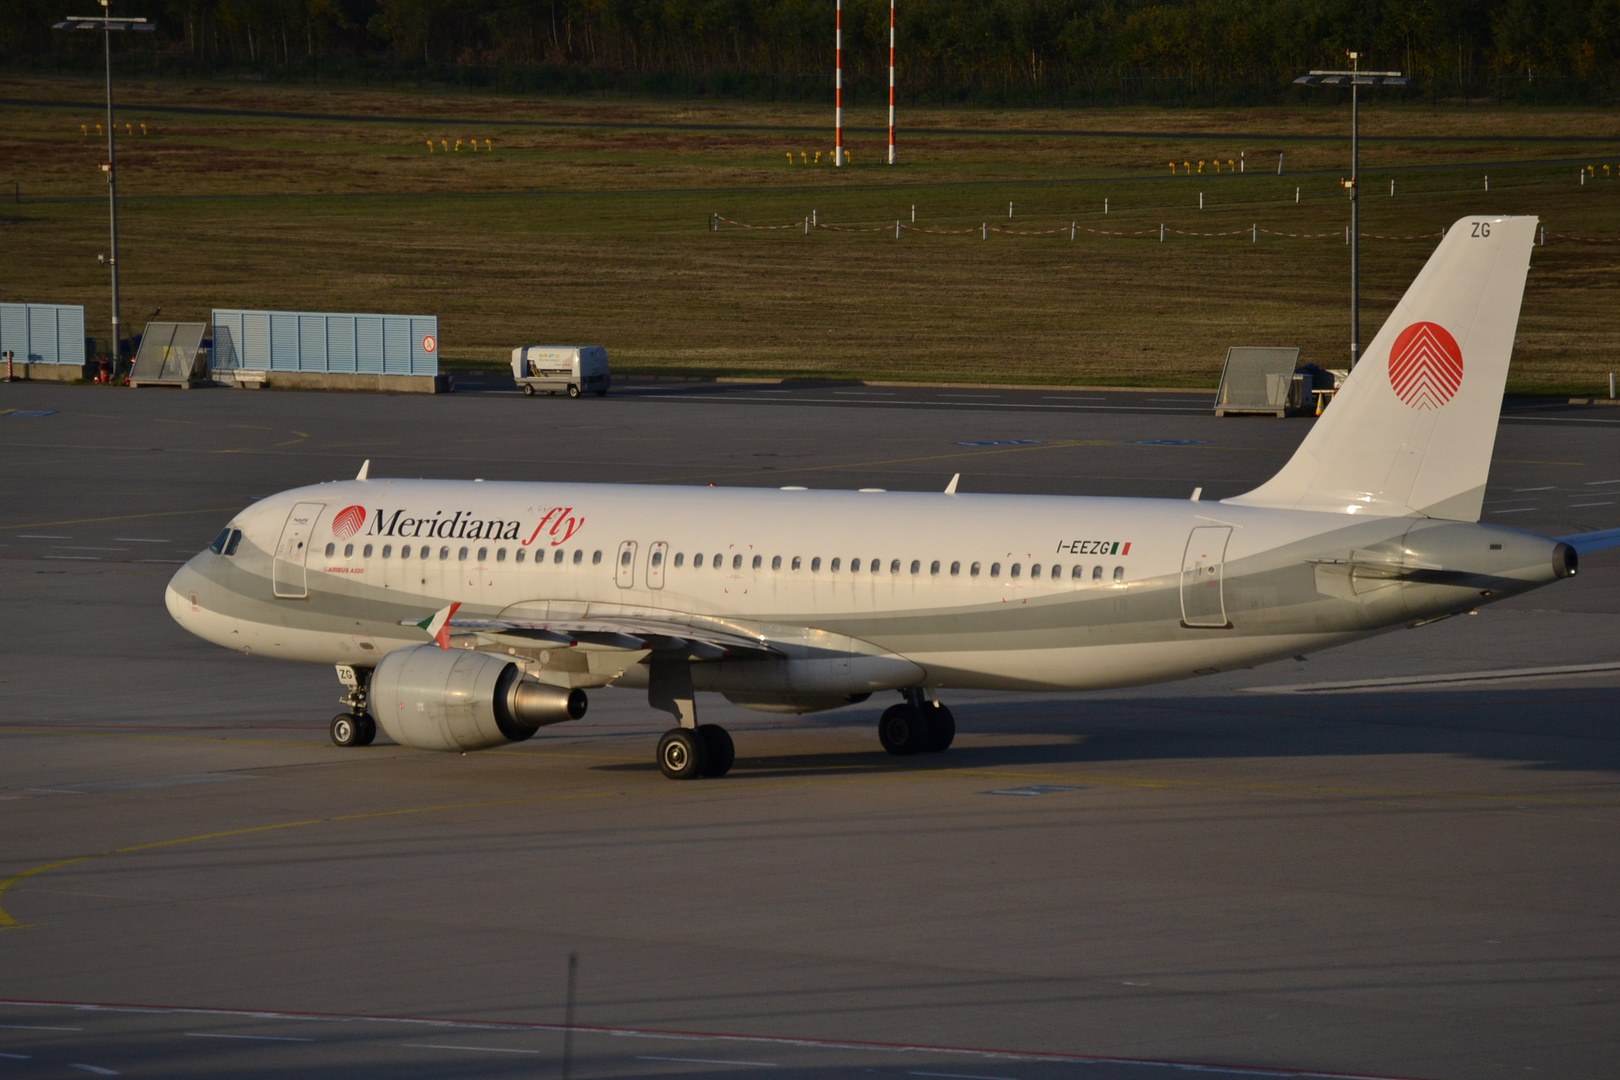 Meridiana Fly after Landing at CGN